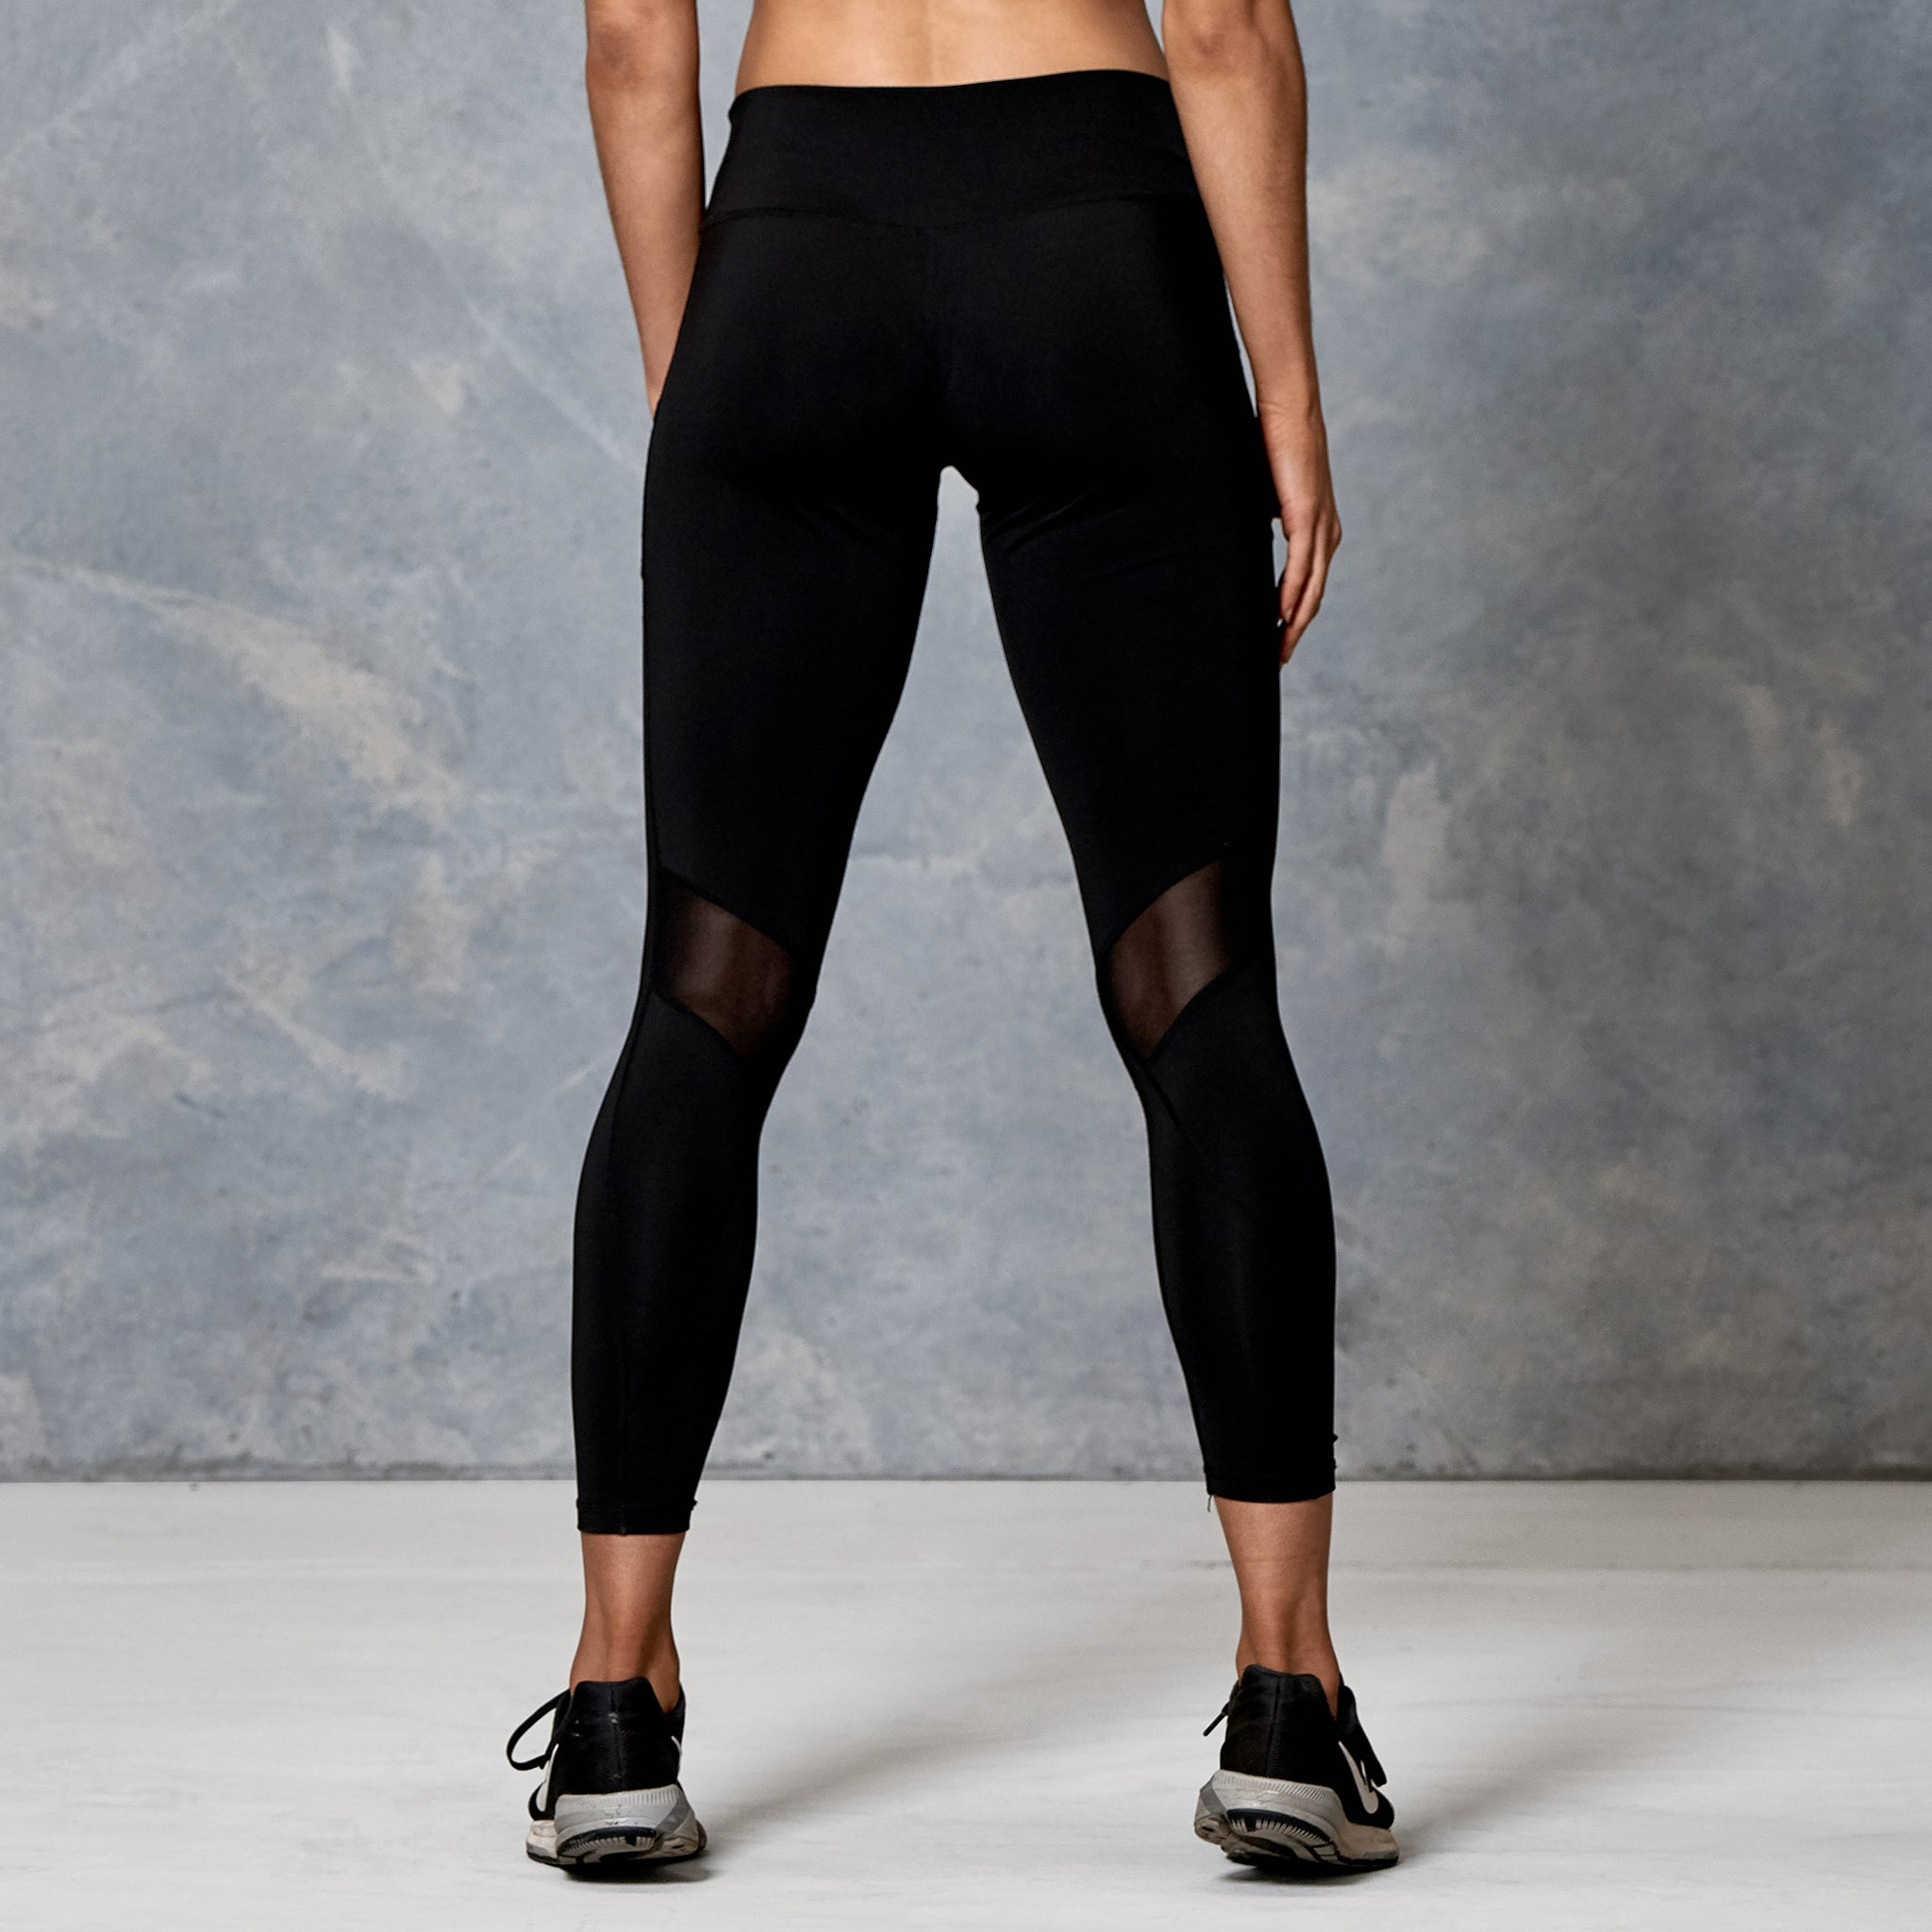 UNFINISHED BUSINESS WOMEN'S LEGGINGS